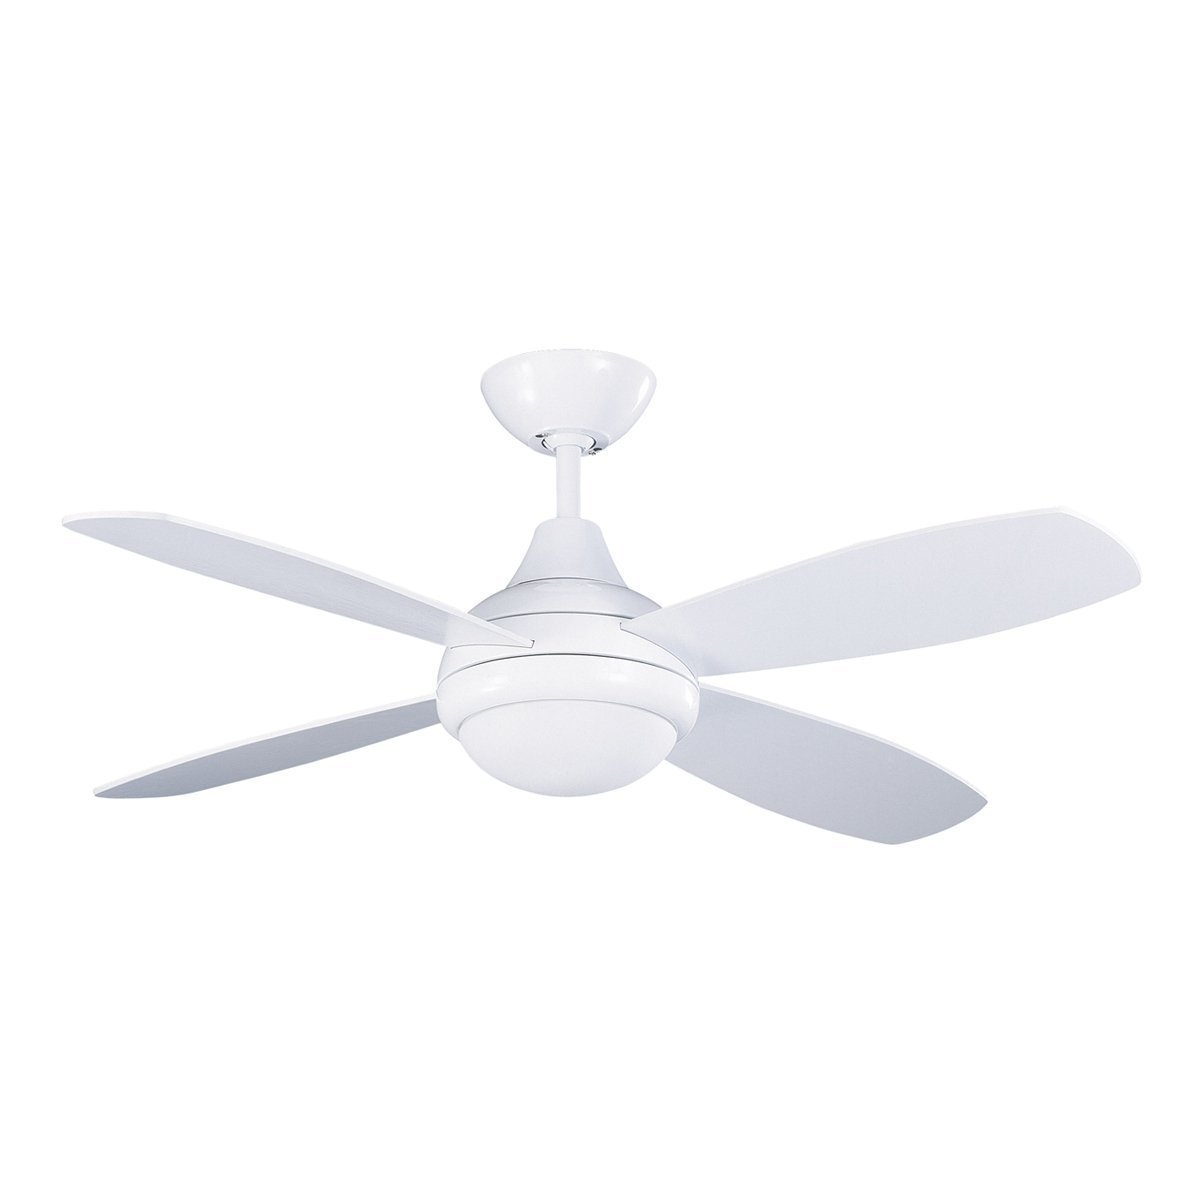 Get Ations Kendal Lighting Ac10842 Wh Aviator 42 Inch 4 Blade 1 Light Ceiling Fan